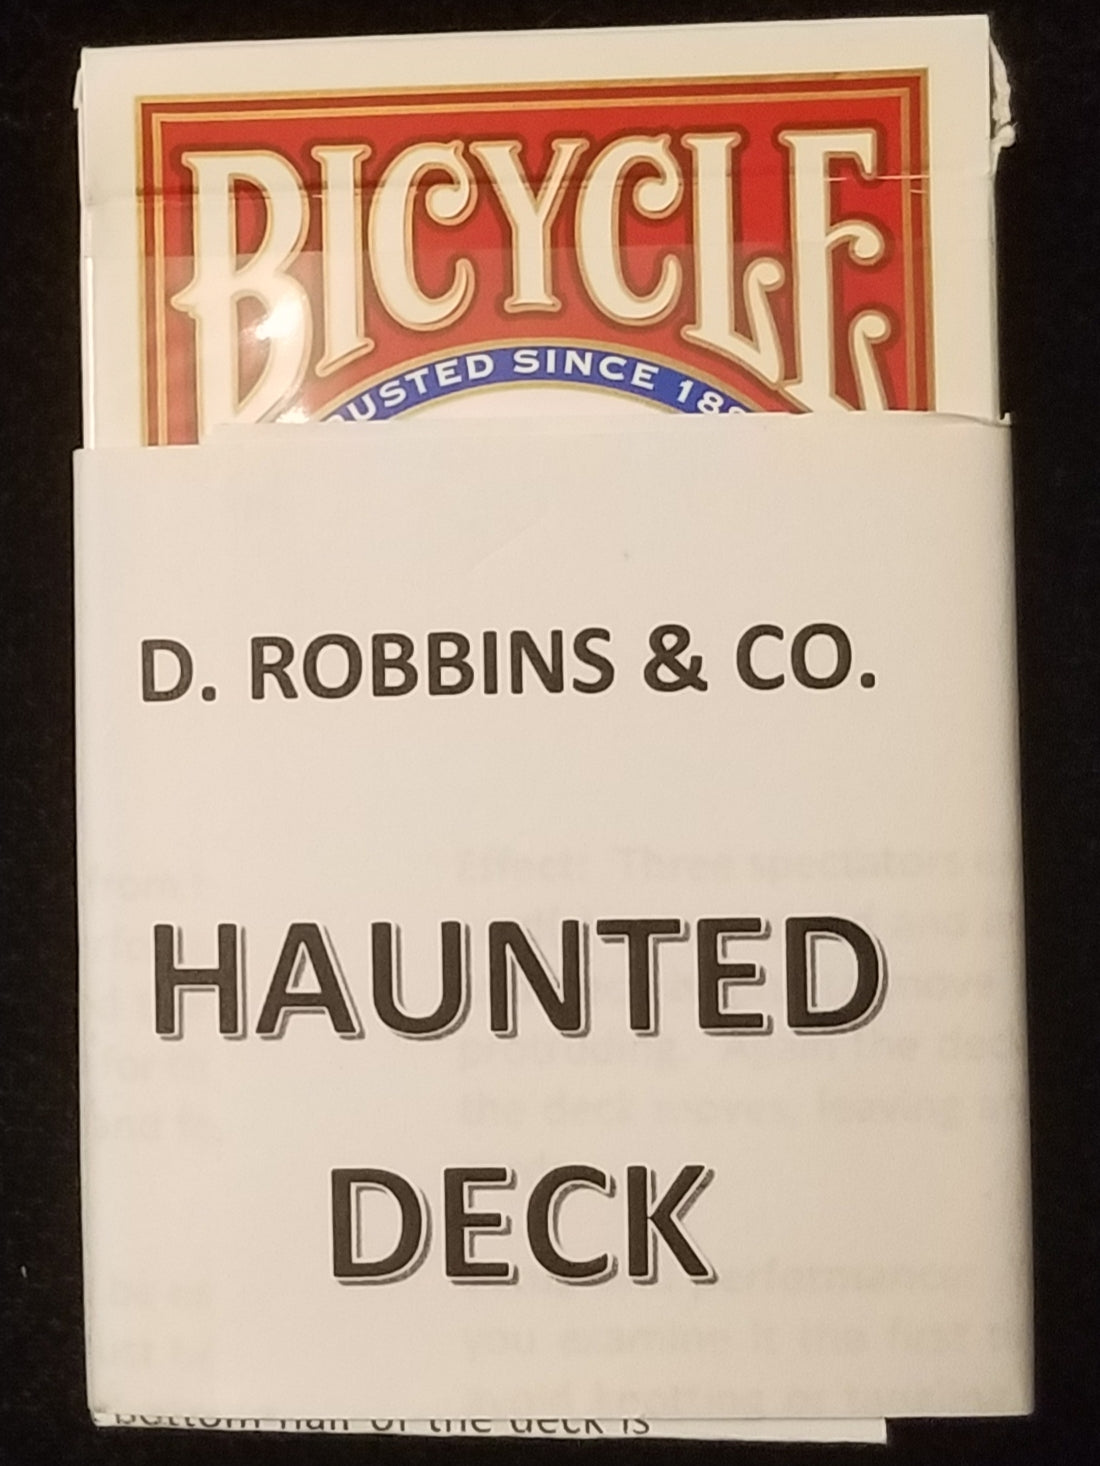 Haunted Deck Bicycle Poker (E-Z) - Red backed